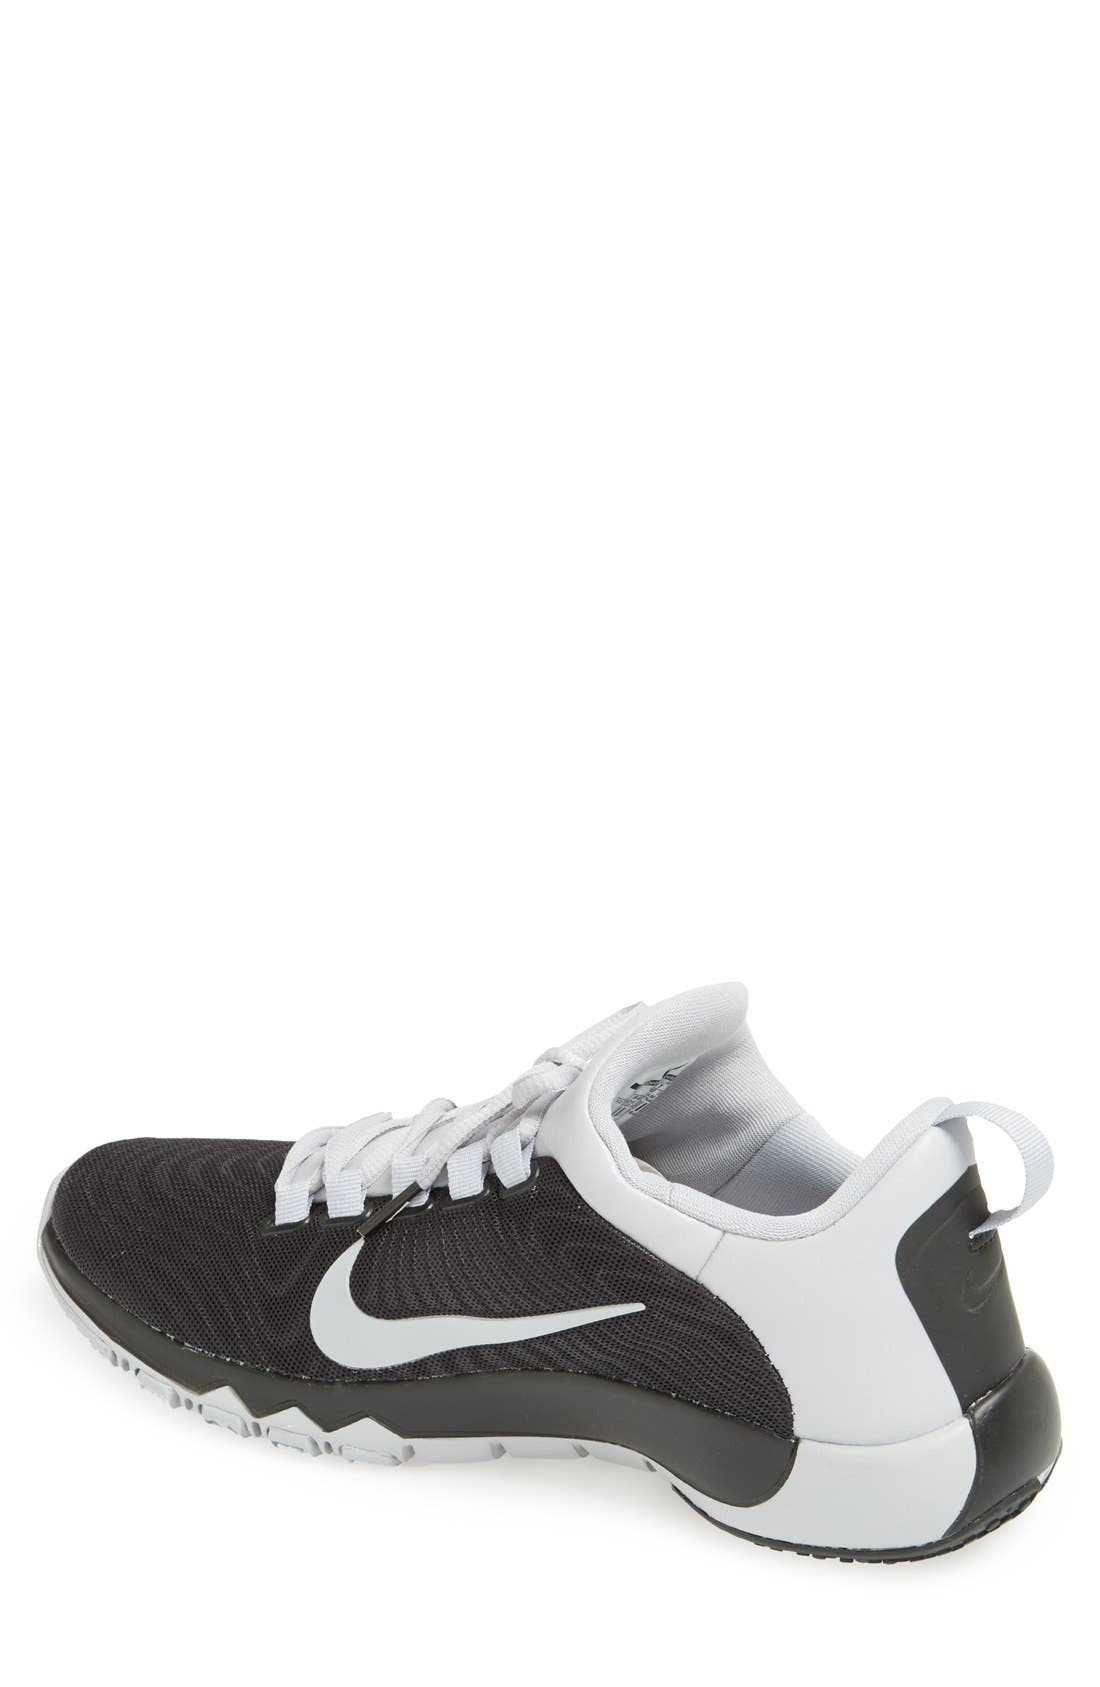 Alternate Image 3  - Nike 'Free 5.0 Trainer' Training Shoe (Men)